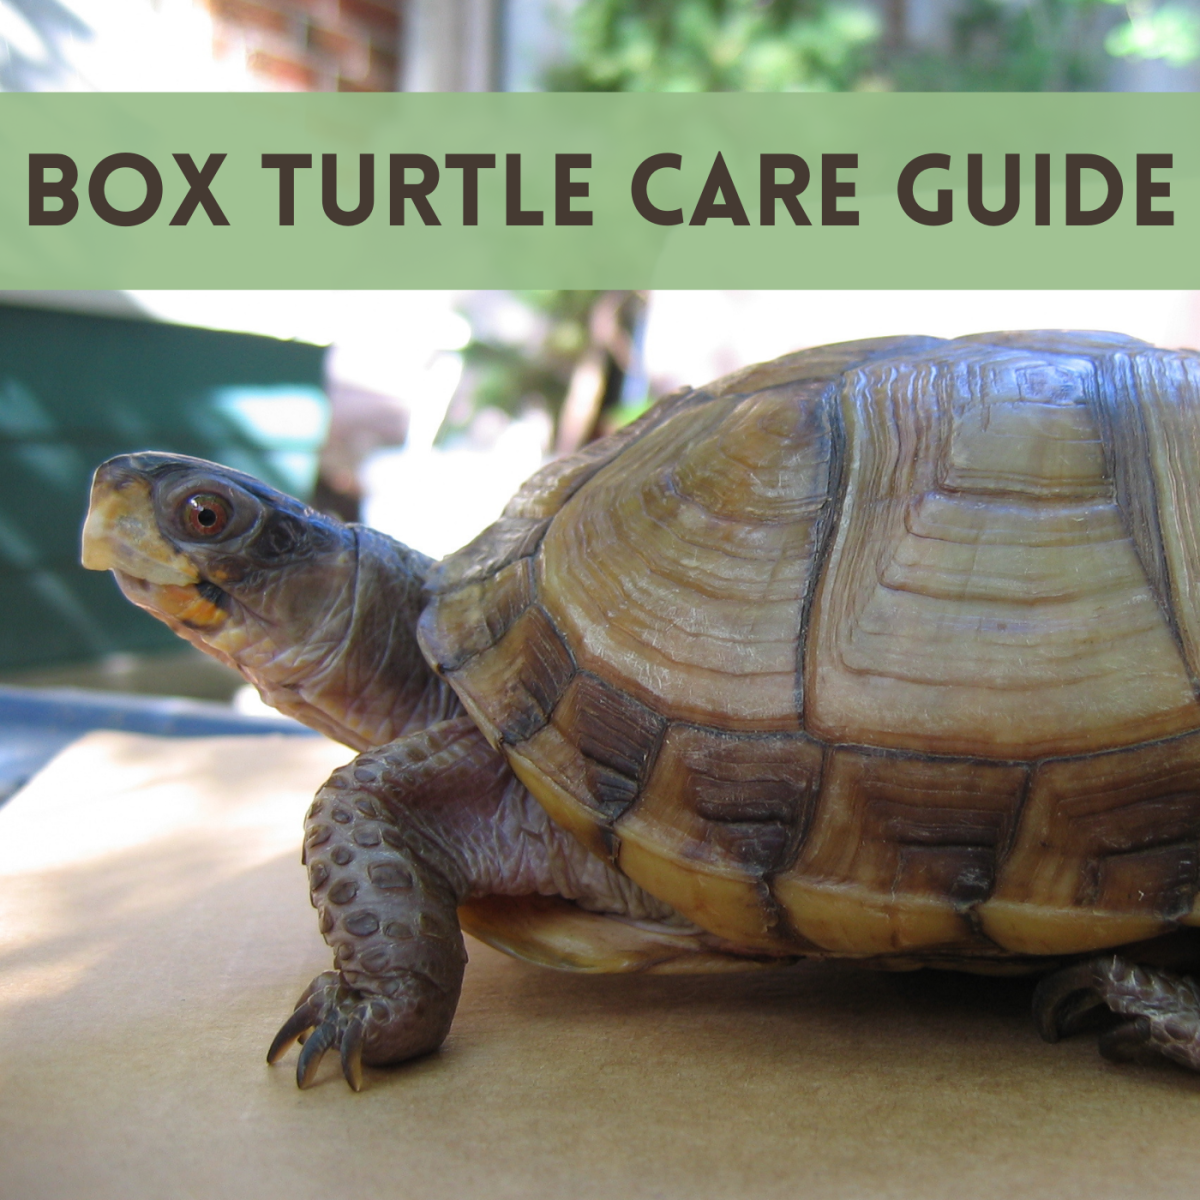 Box turtles are long-lived pets that require detailed care. Learn more about housing, feeding, and handling these turtles.